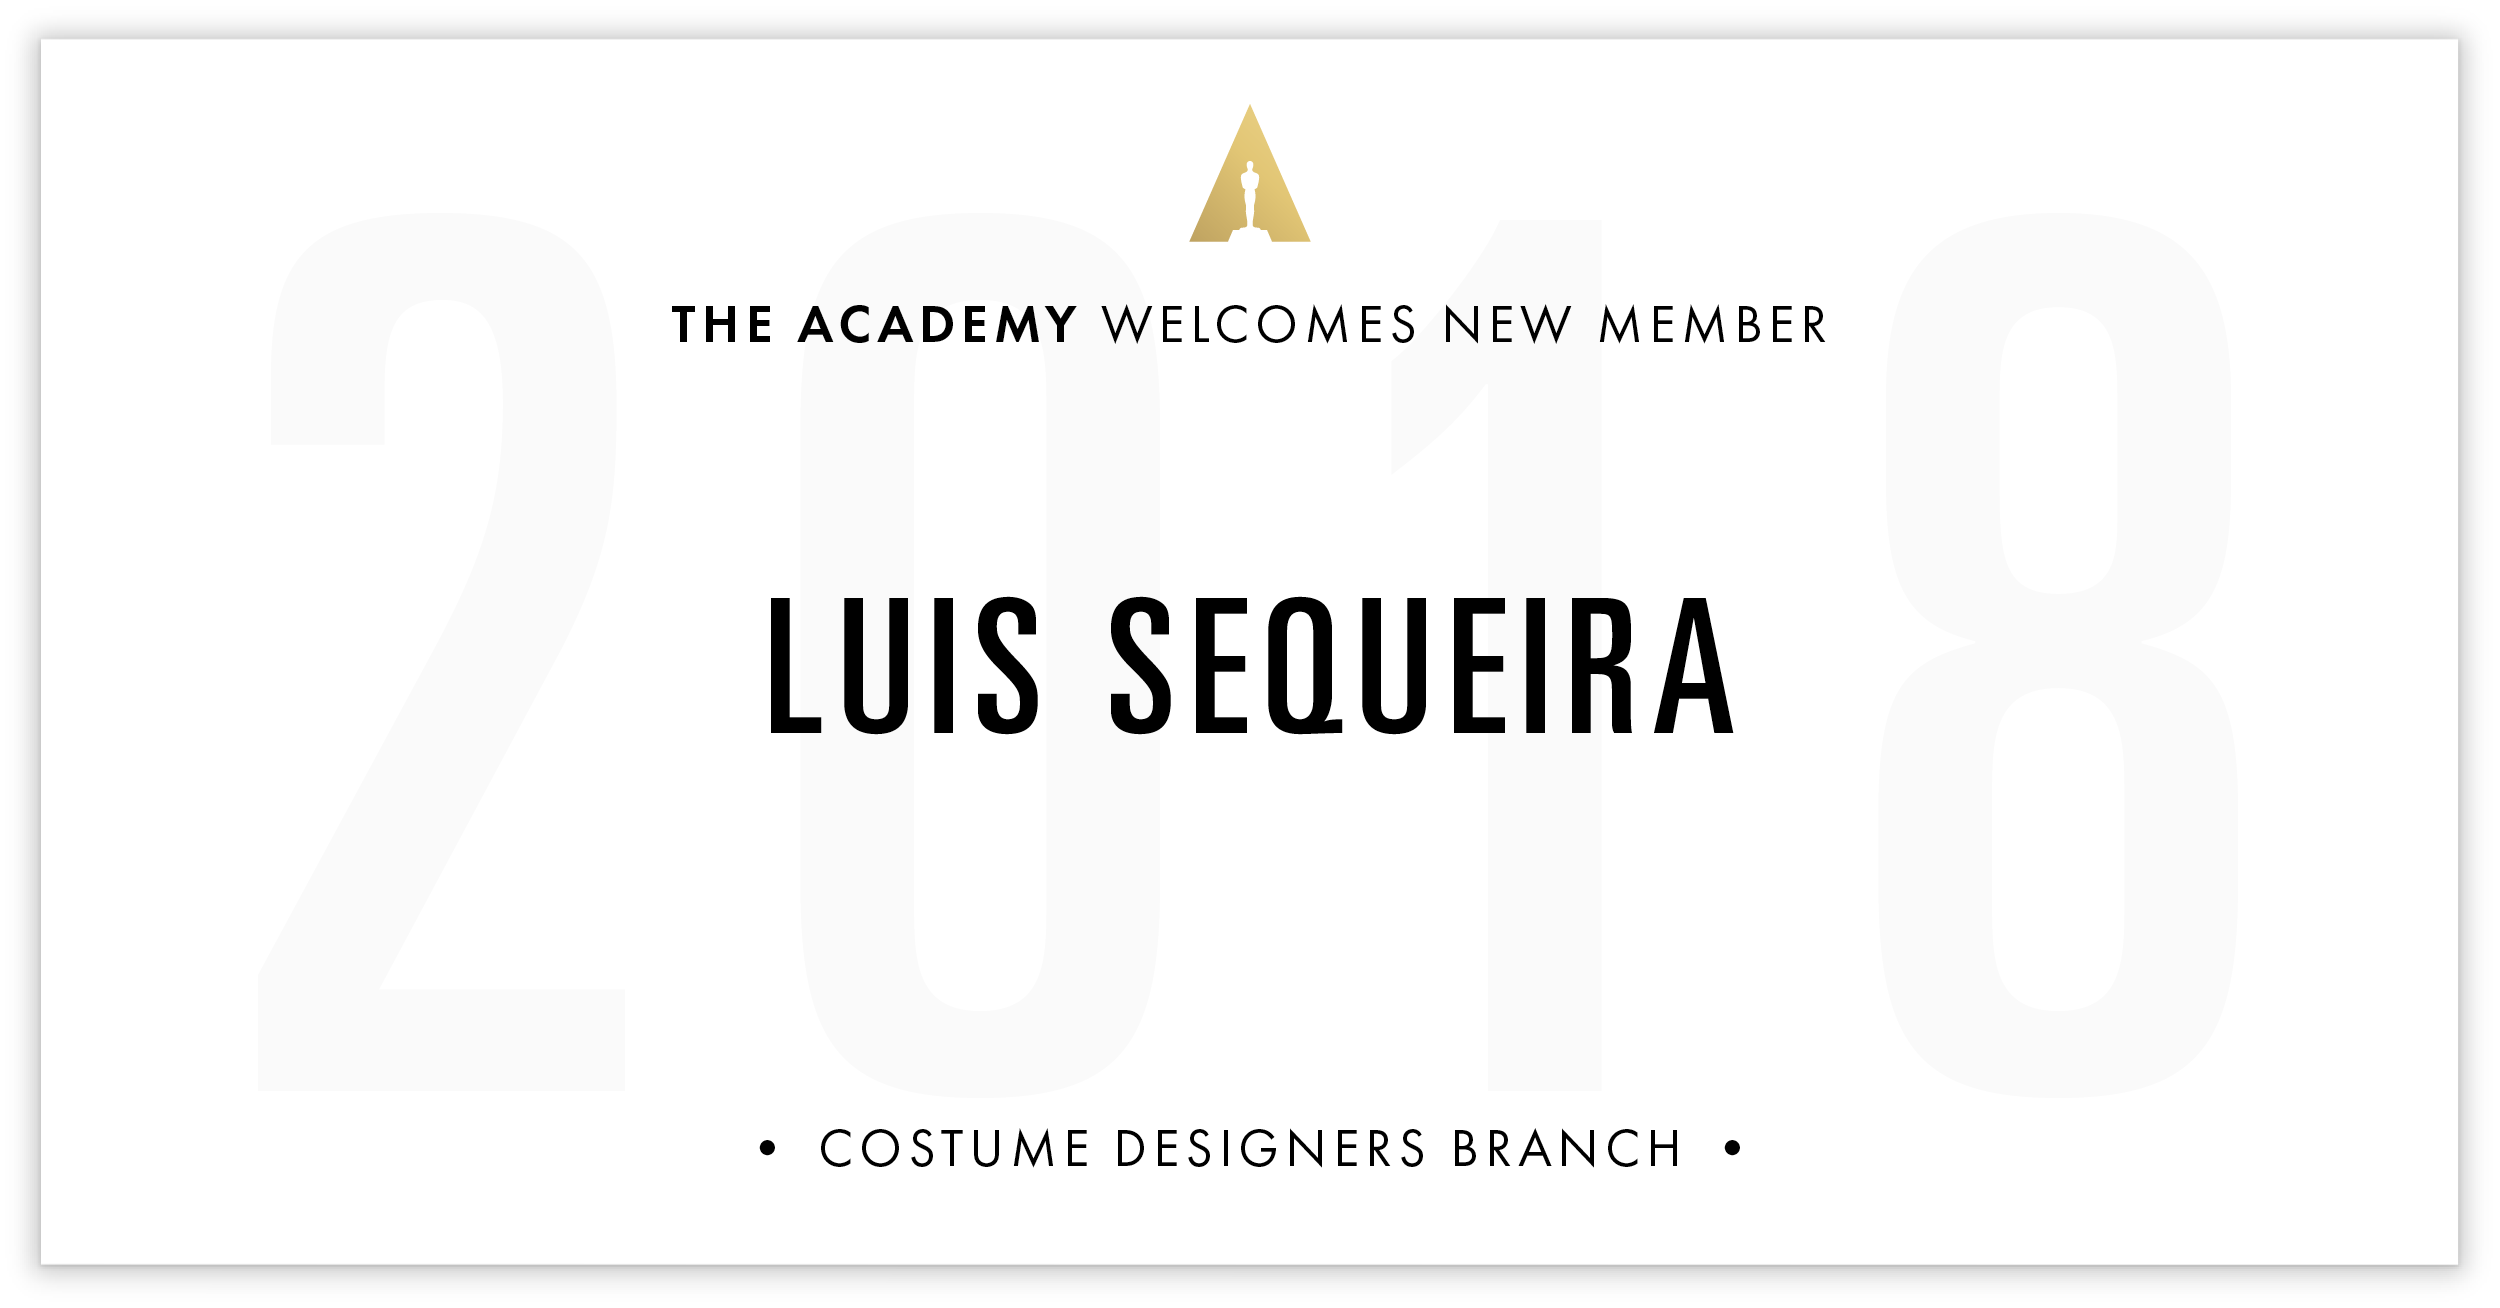 Luis Sequeira is invited!